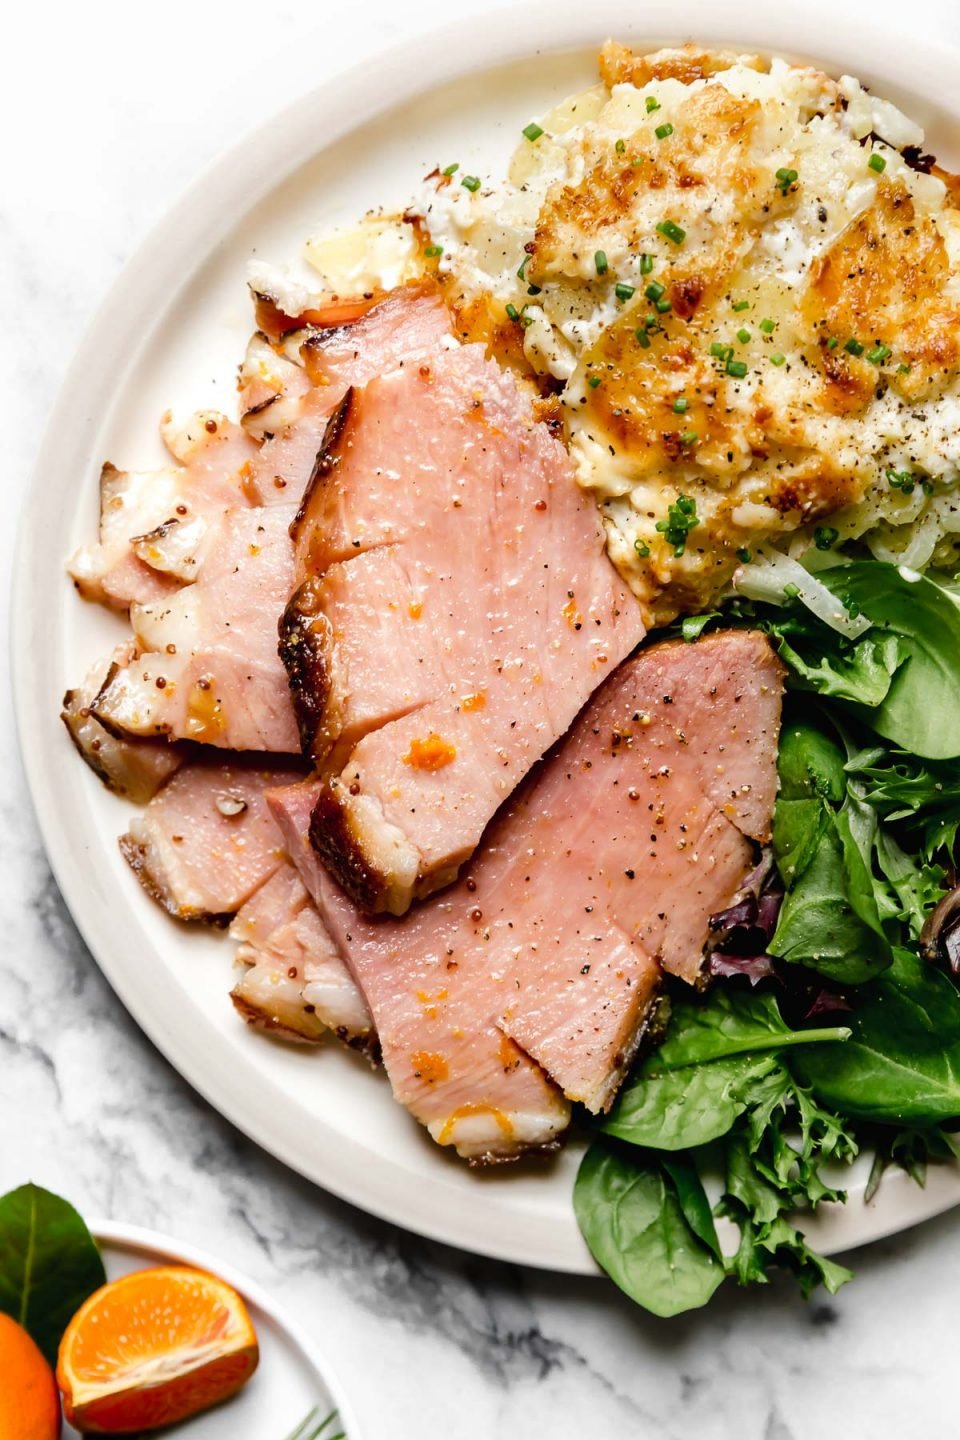 Thick slices maple glazed baked ham, plated on a dinner plate with greens & au gratin potatoes.